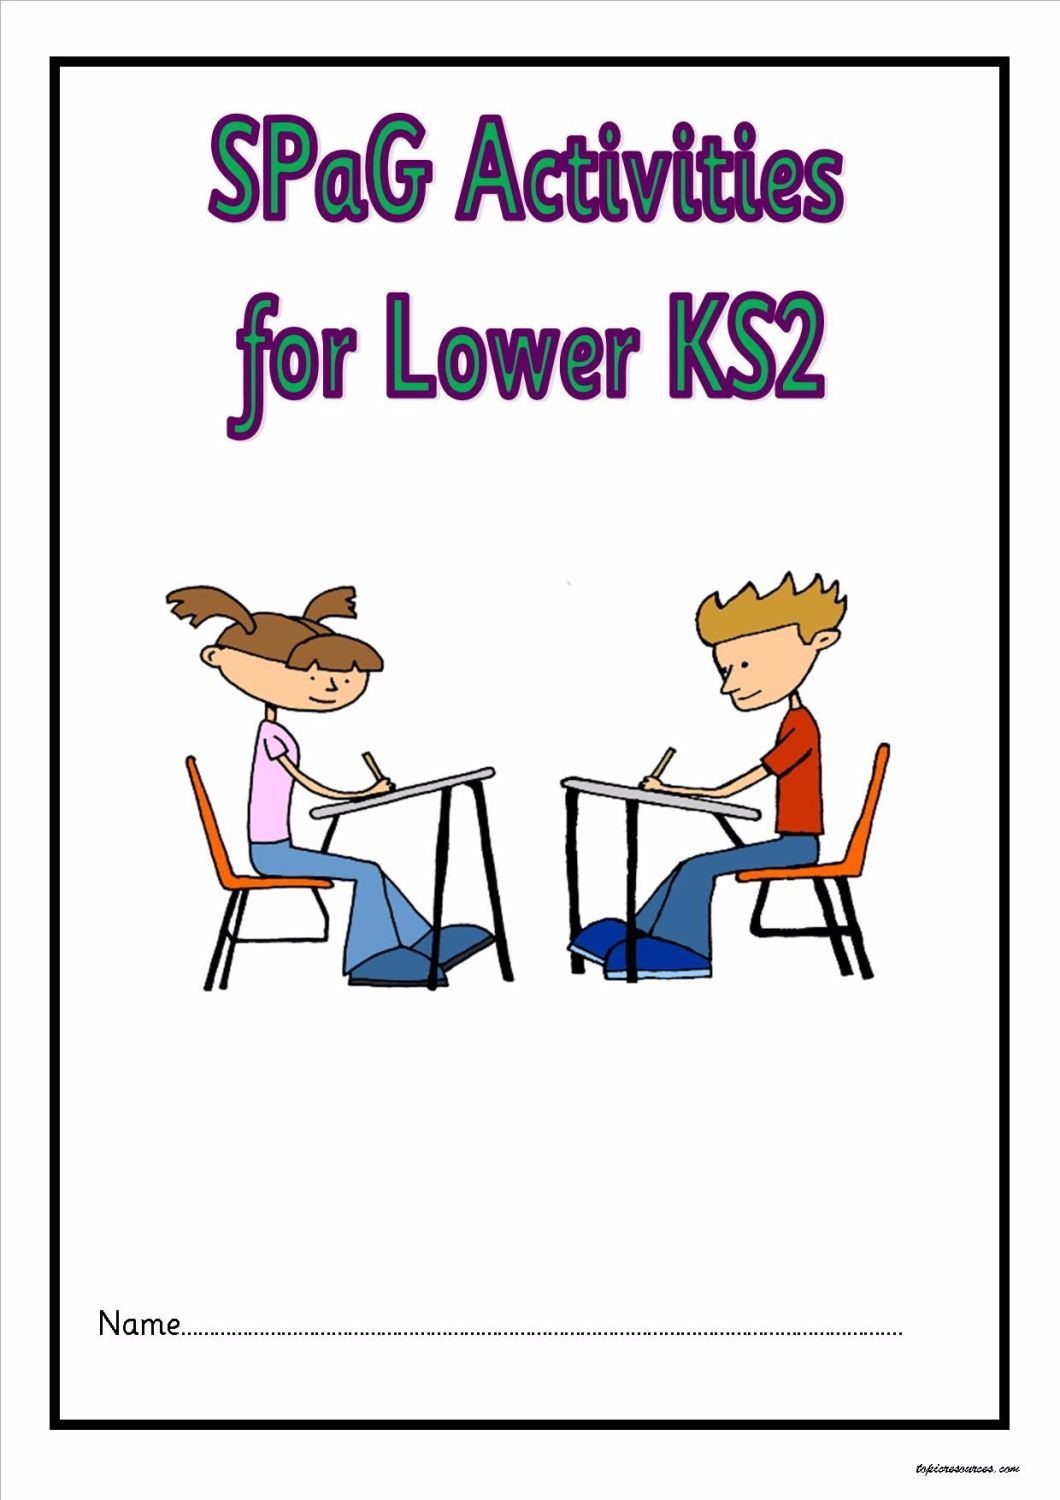 ks1 ks2 sen ipc literacy spag activity booklets guided reading writing spelling. Black Bedroom Furniture Sets. Home Design Ideas